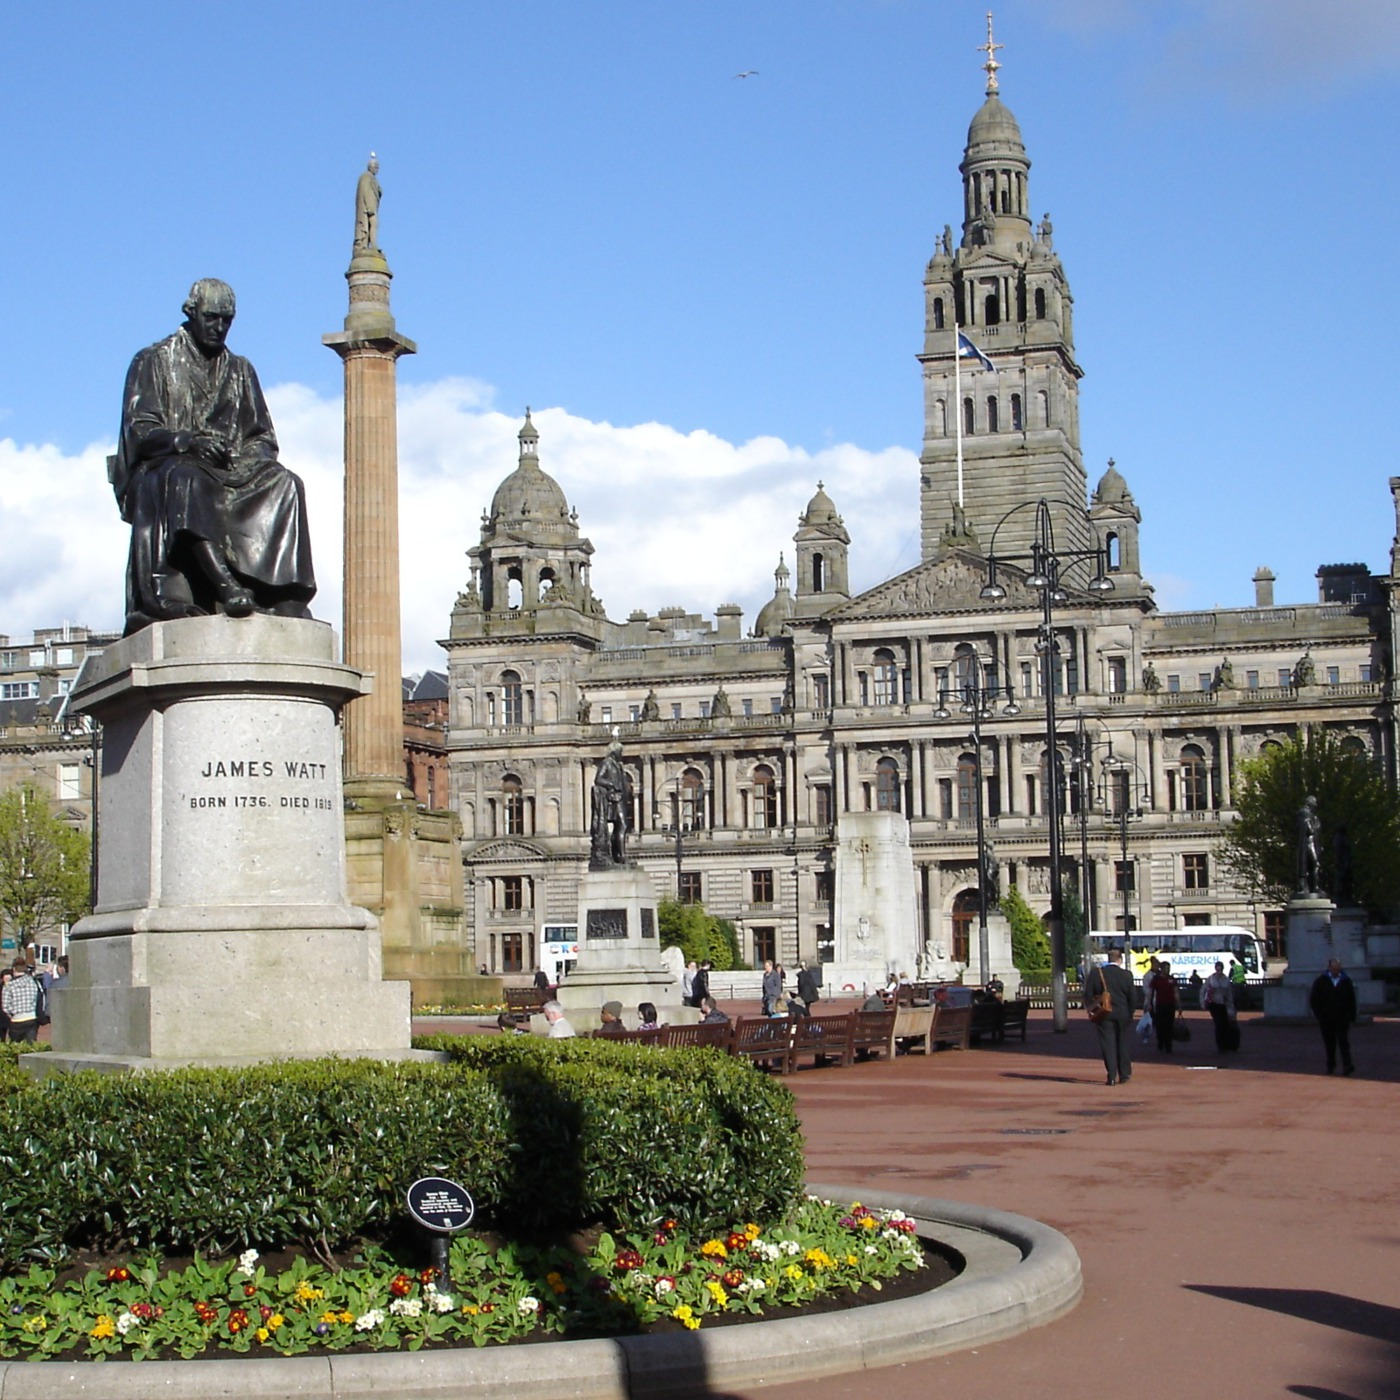 Tour of the Statues in George Square Glasgow